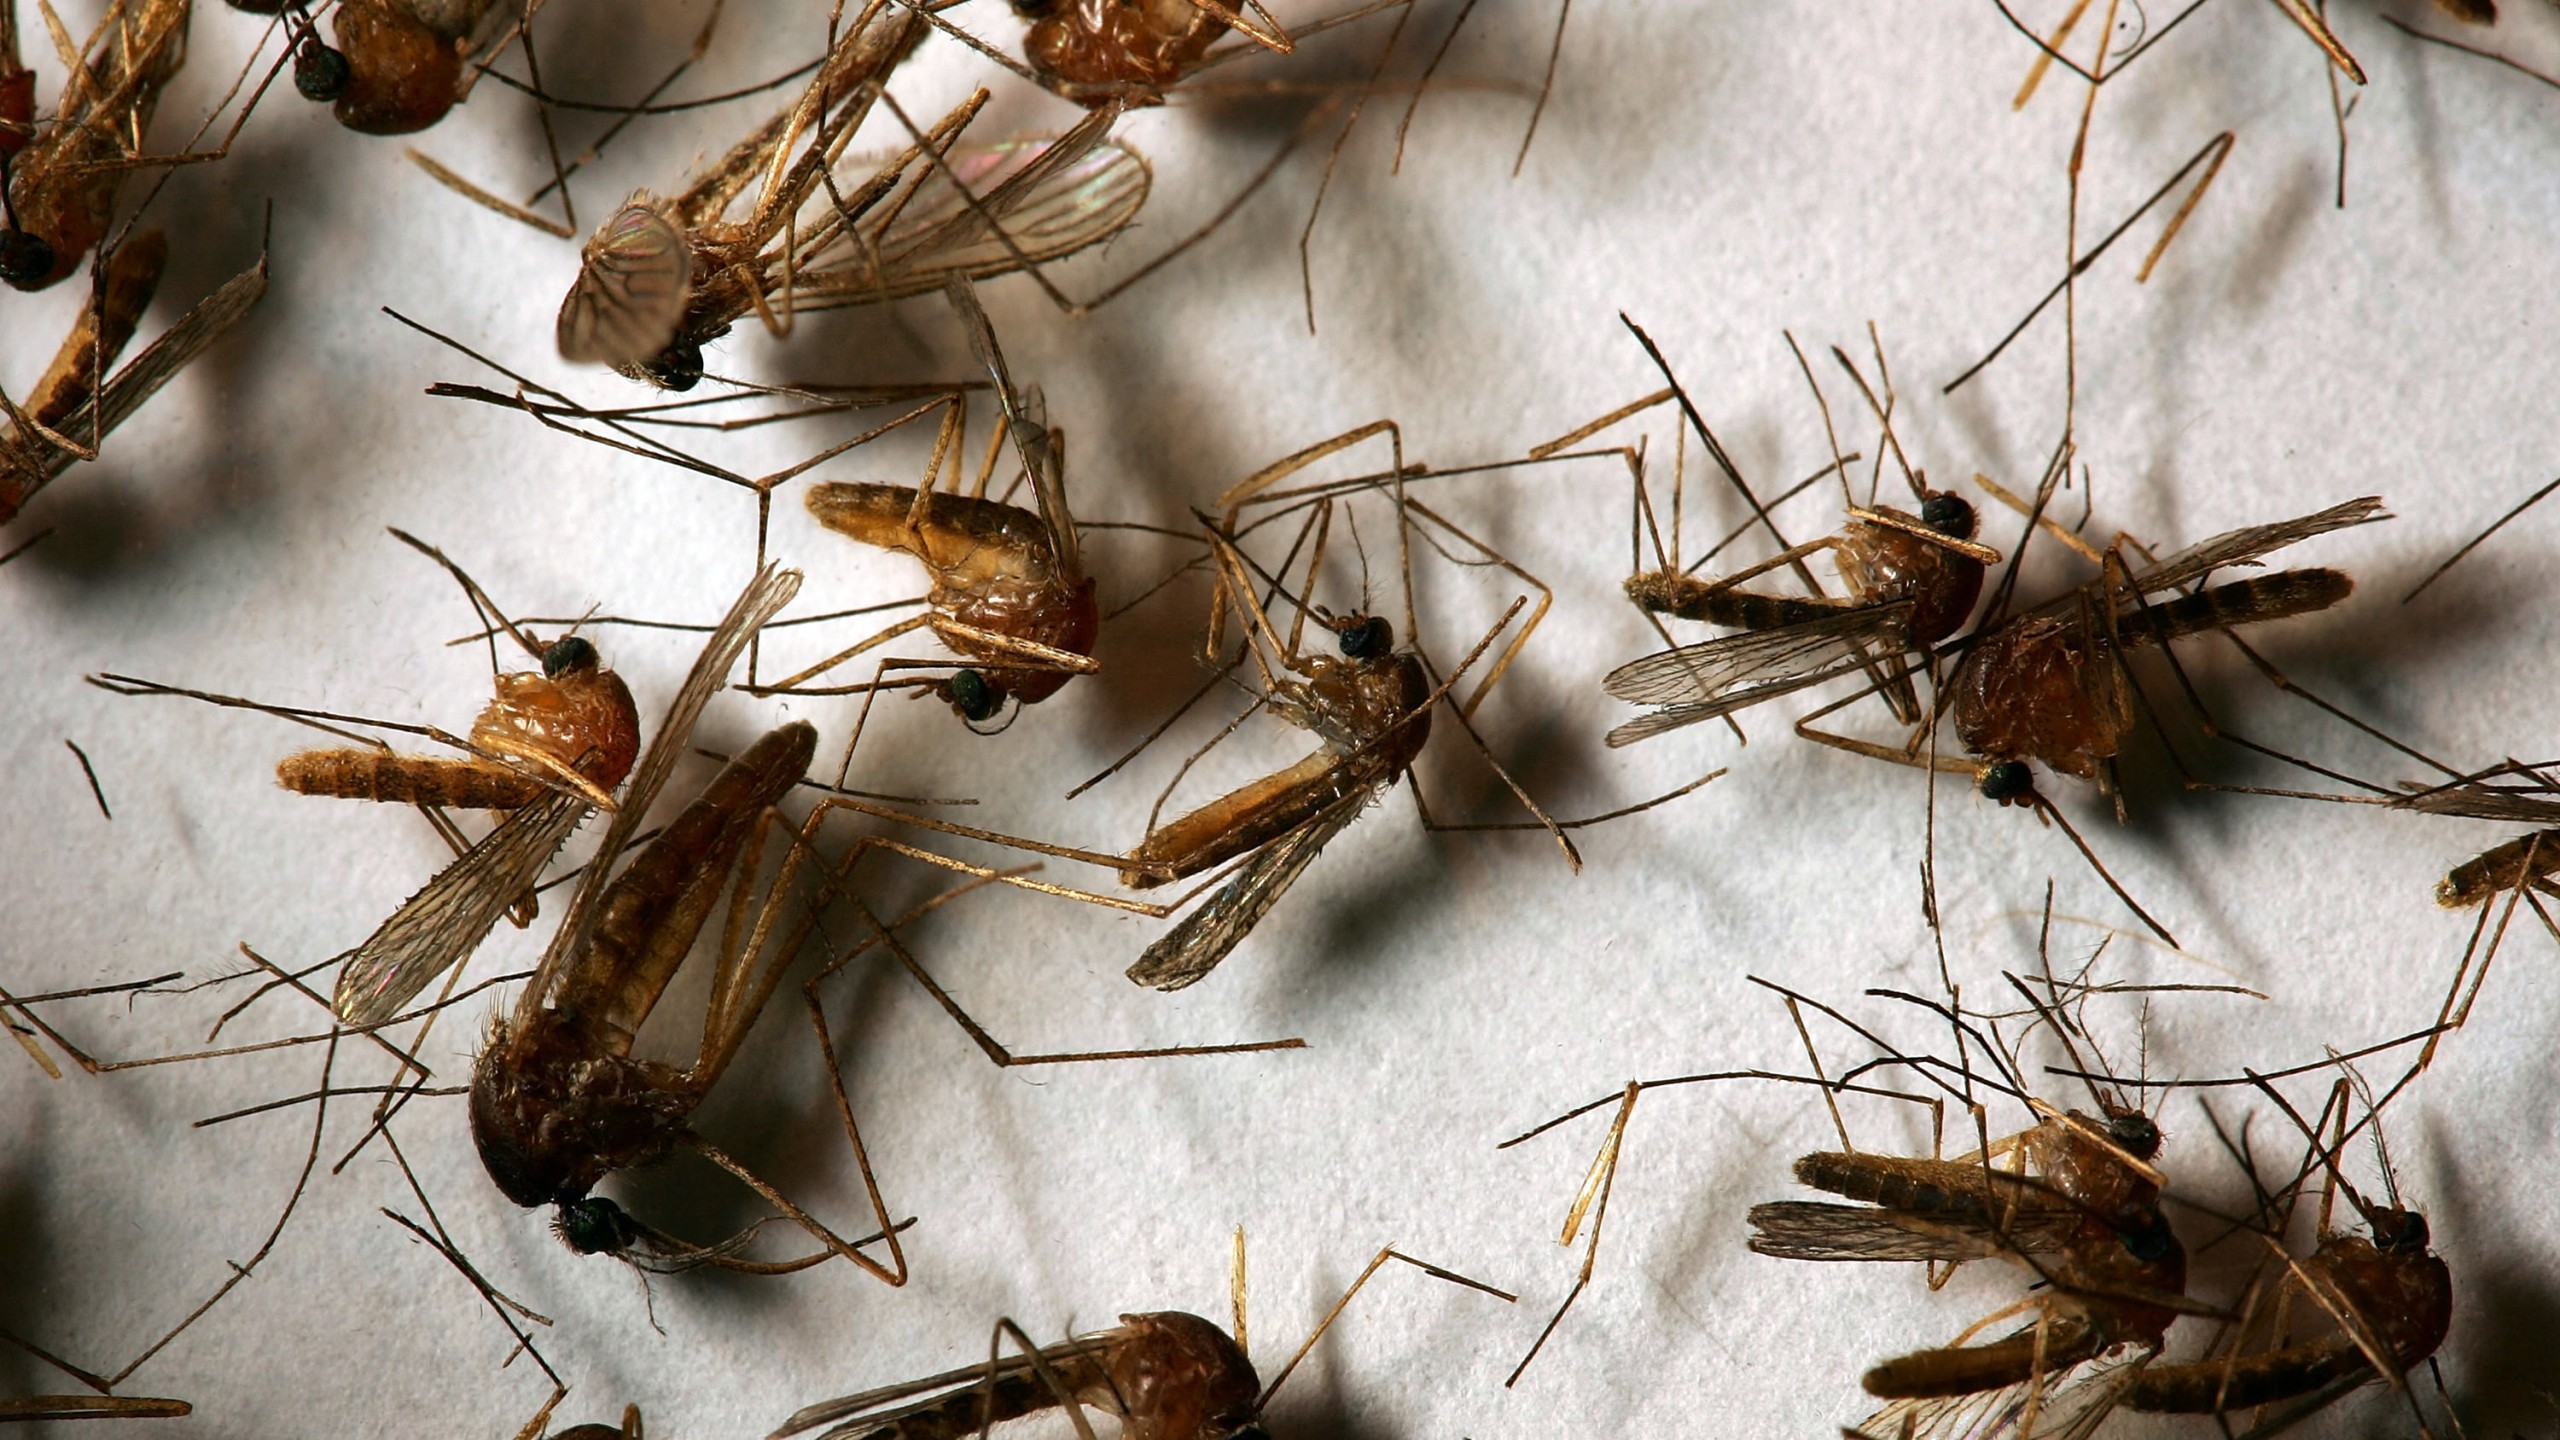 A field sample of mosquitoes that could carry West Nile Virus is seen at offices of the Riverside County Department of Environmental Health on April 26, 2007, in Hemet. (Credit: David McNew/Getty Images)